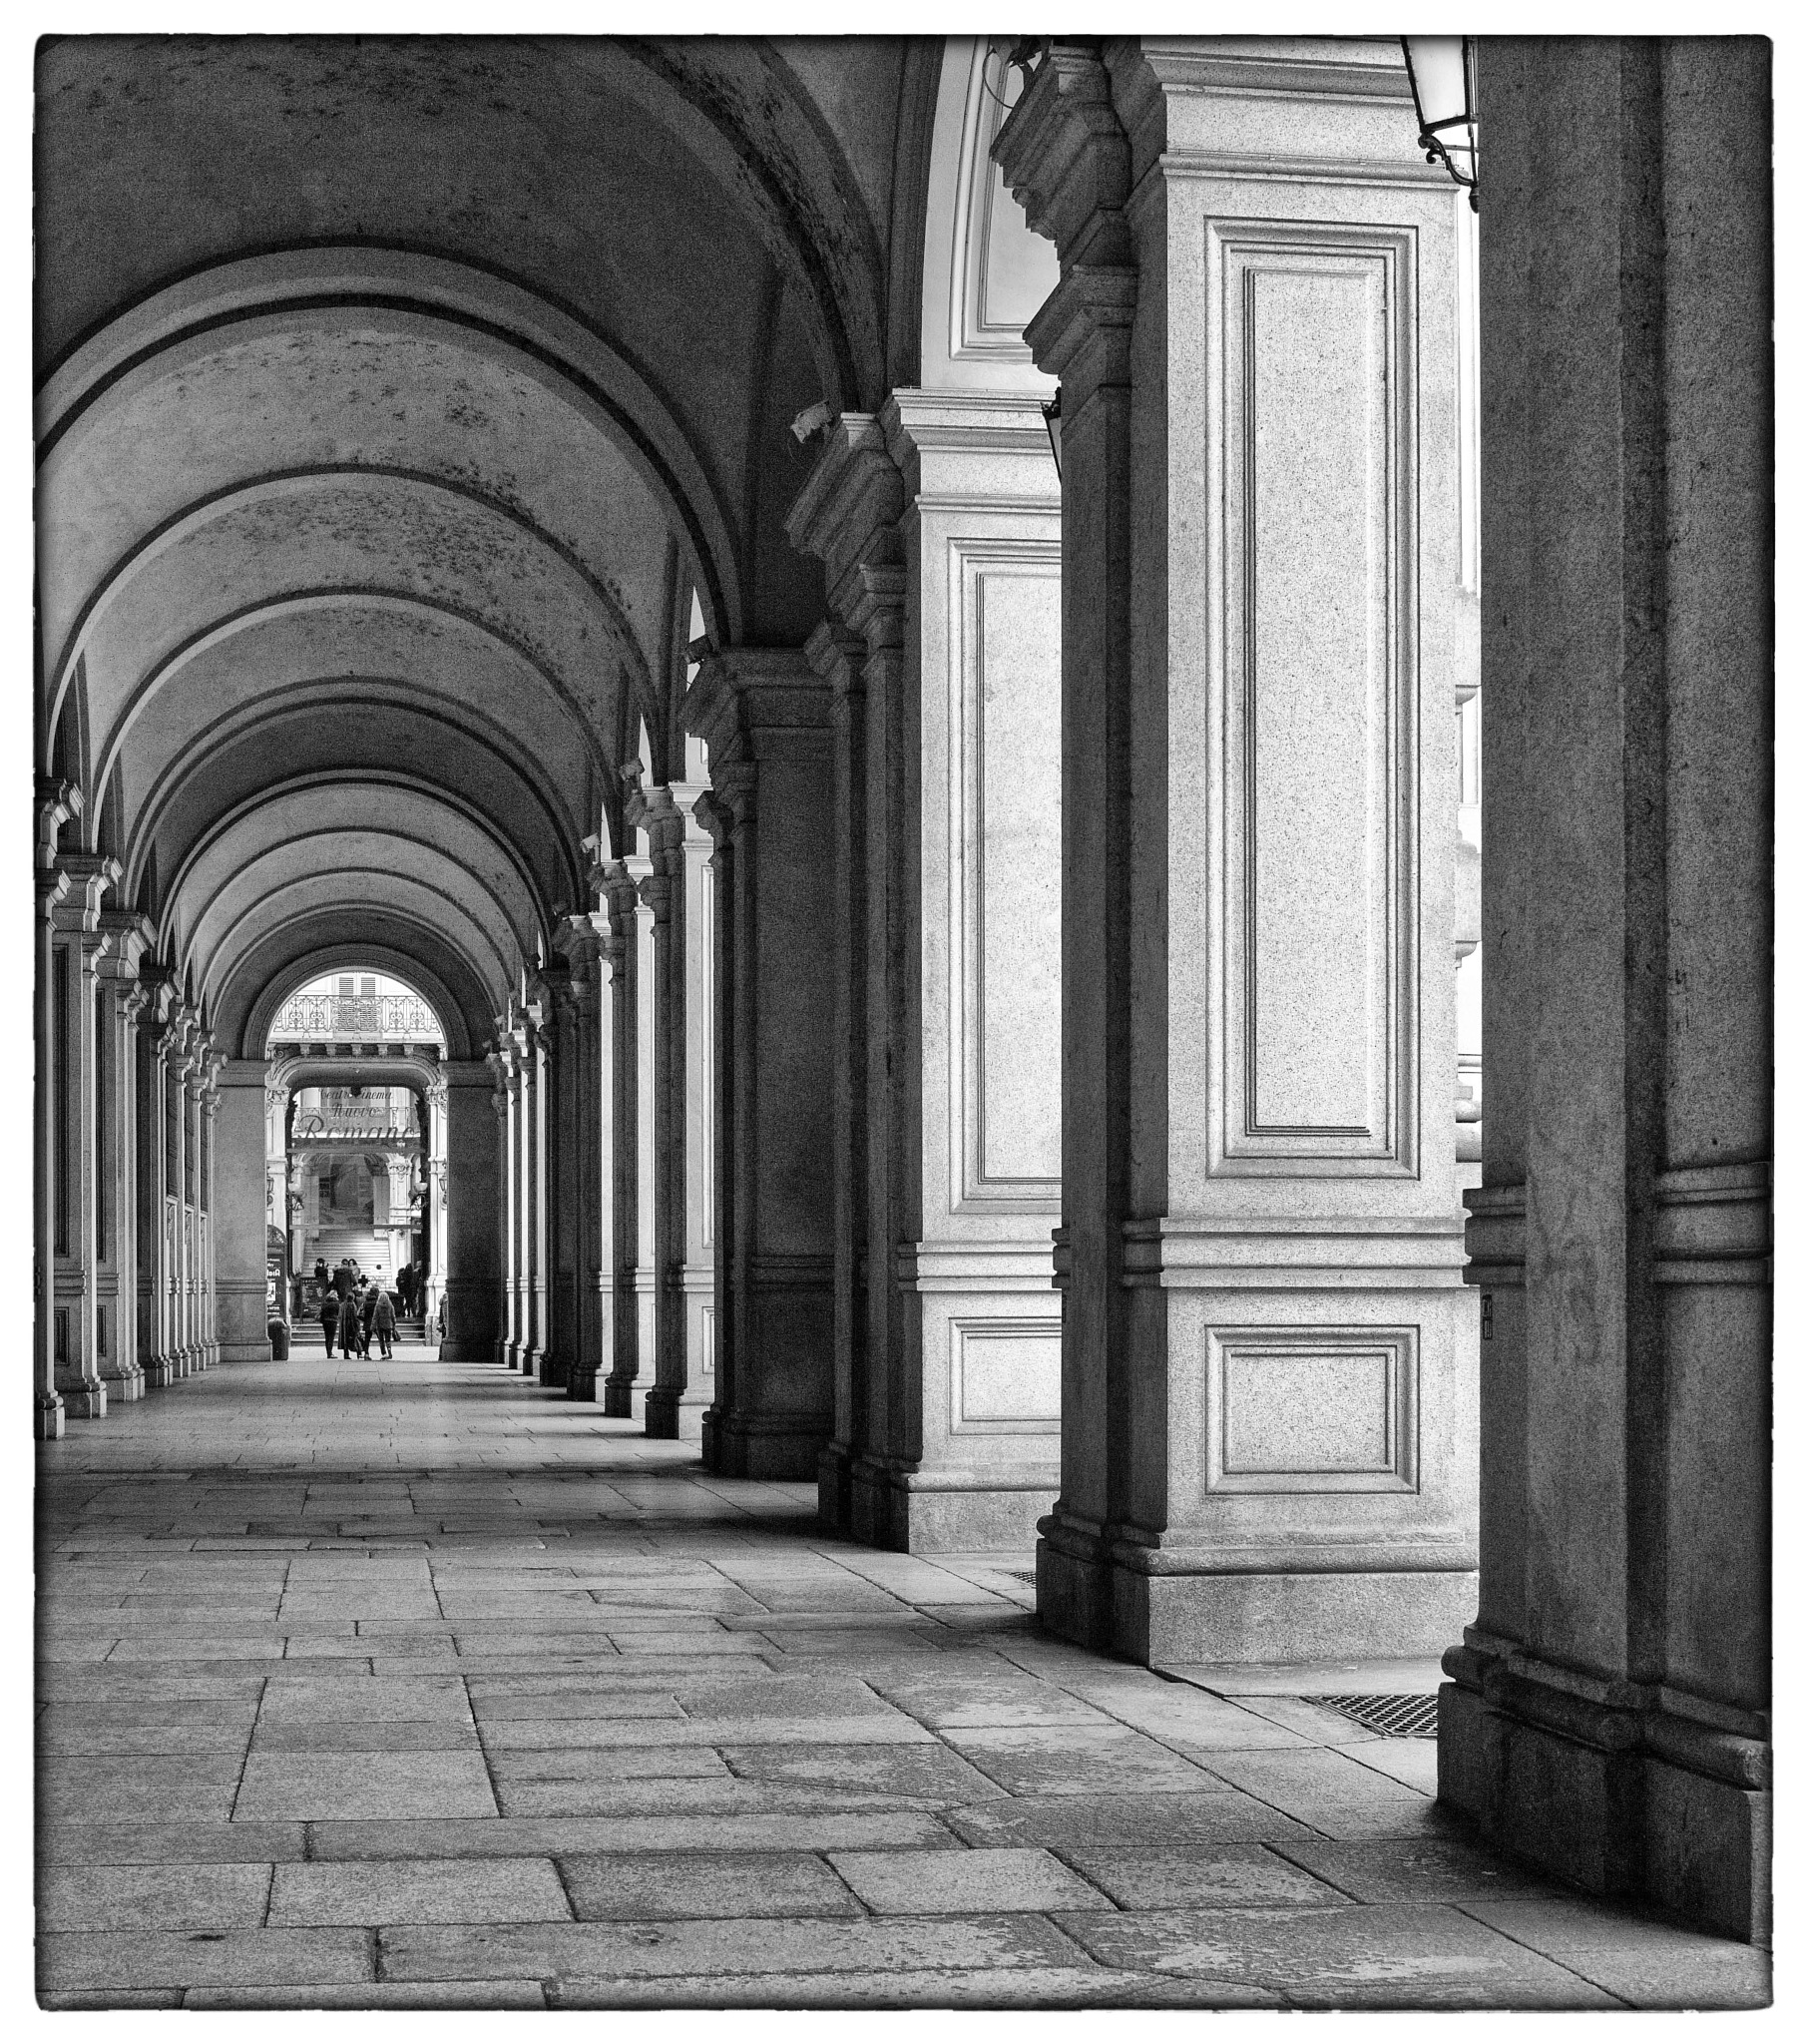 torino by bcorech